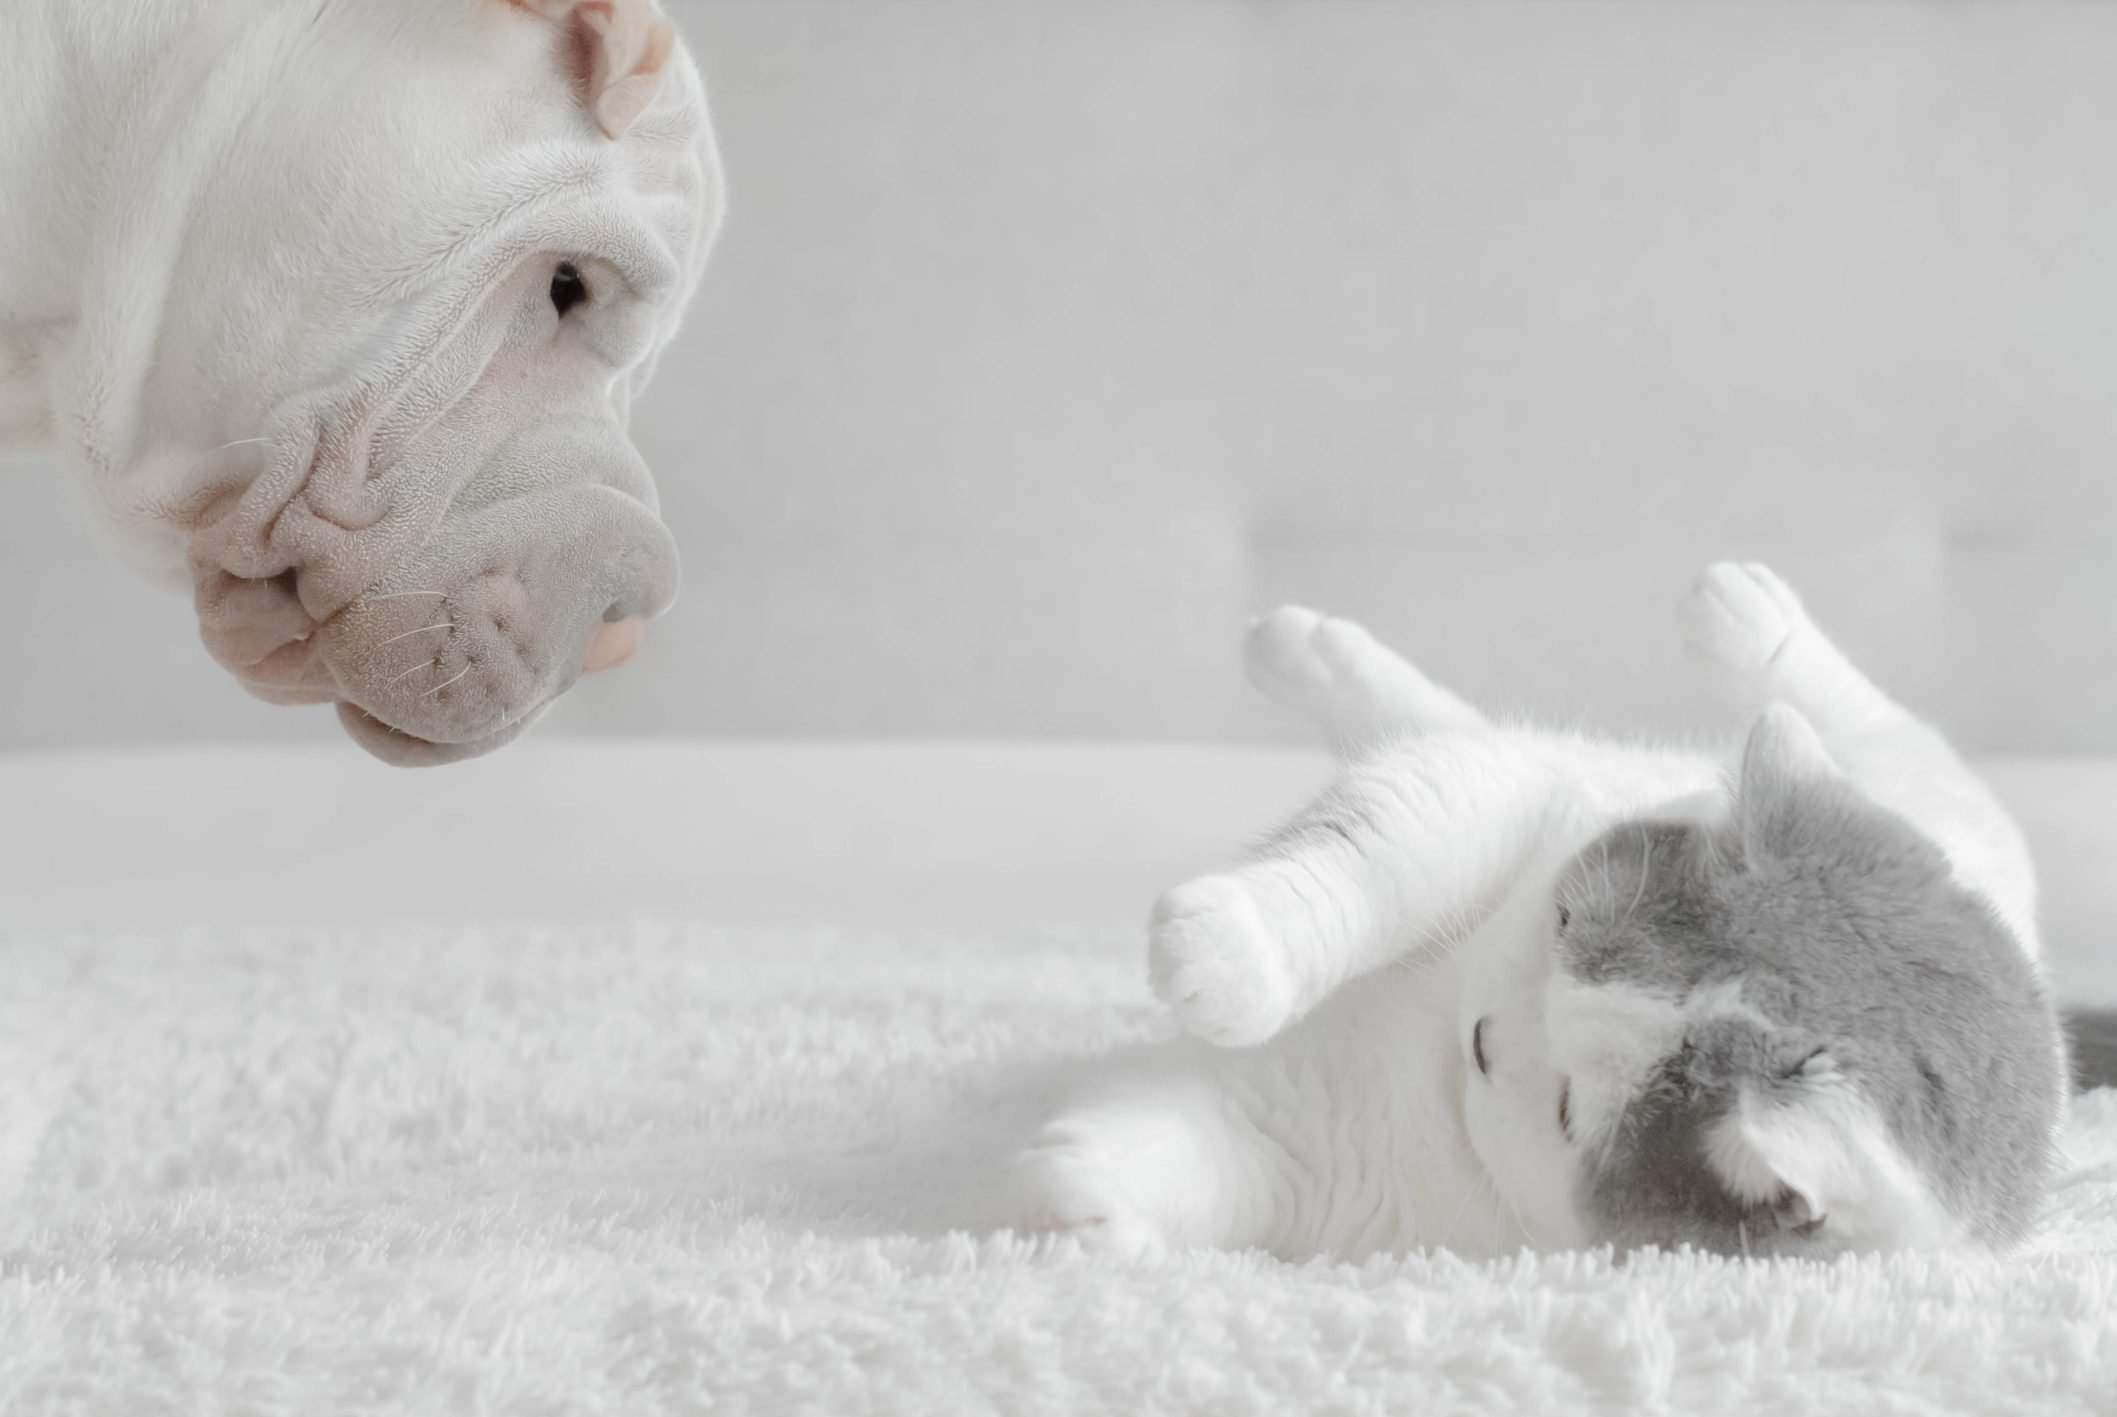 Shar-pei puppy playing with a British shorthair cat